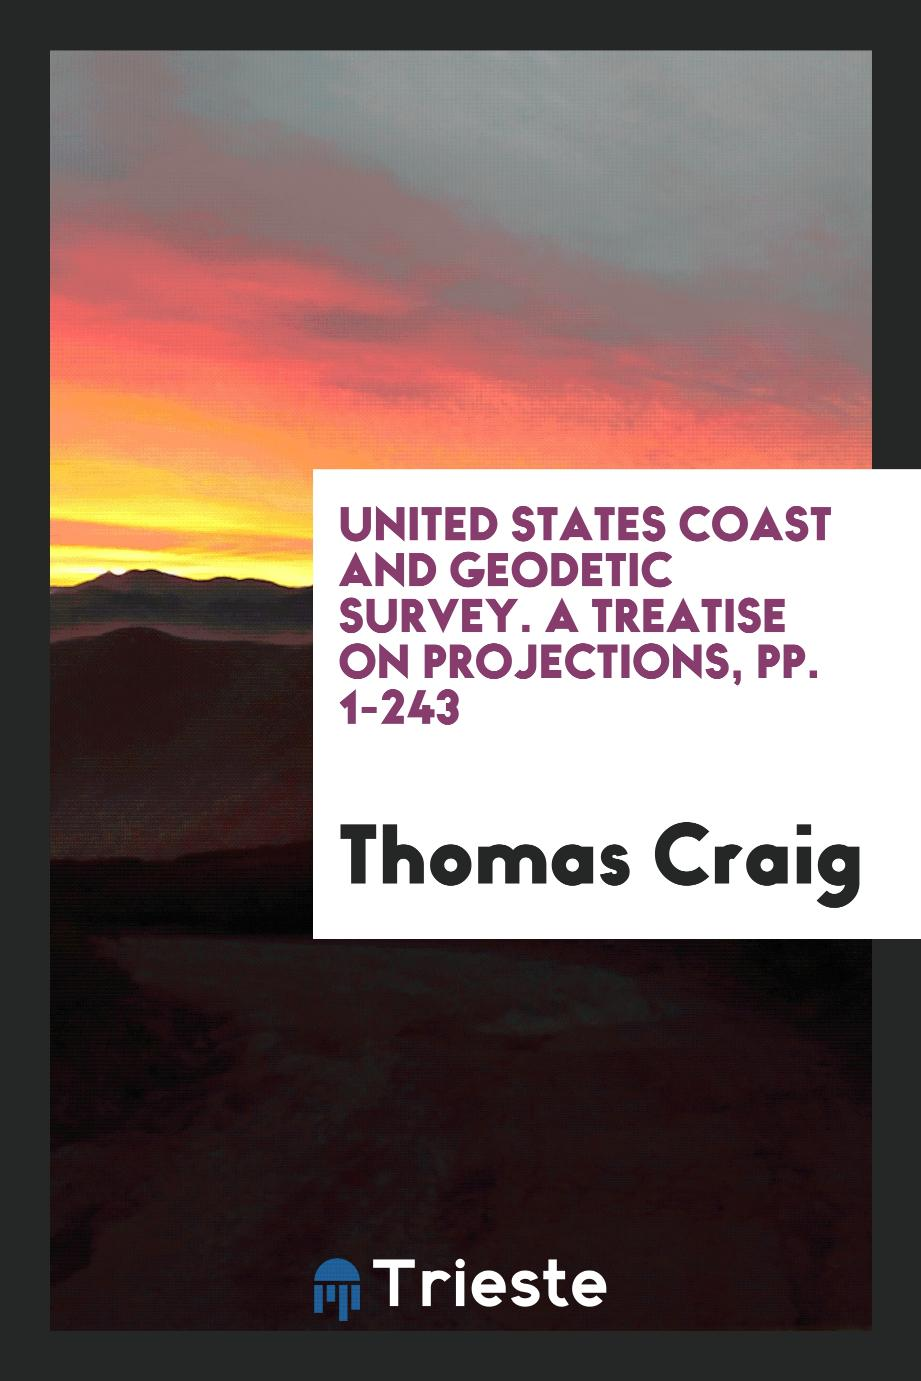 United States Coast and Geodetic Survey. A Treatise on Projections, pp. 1-243